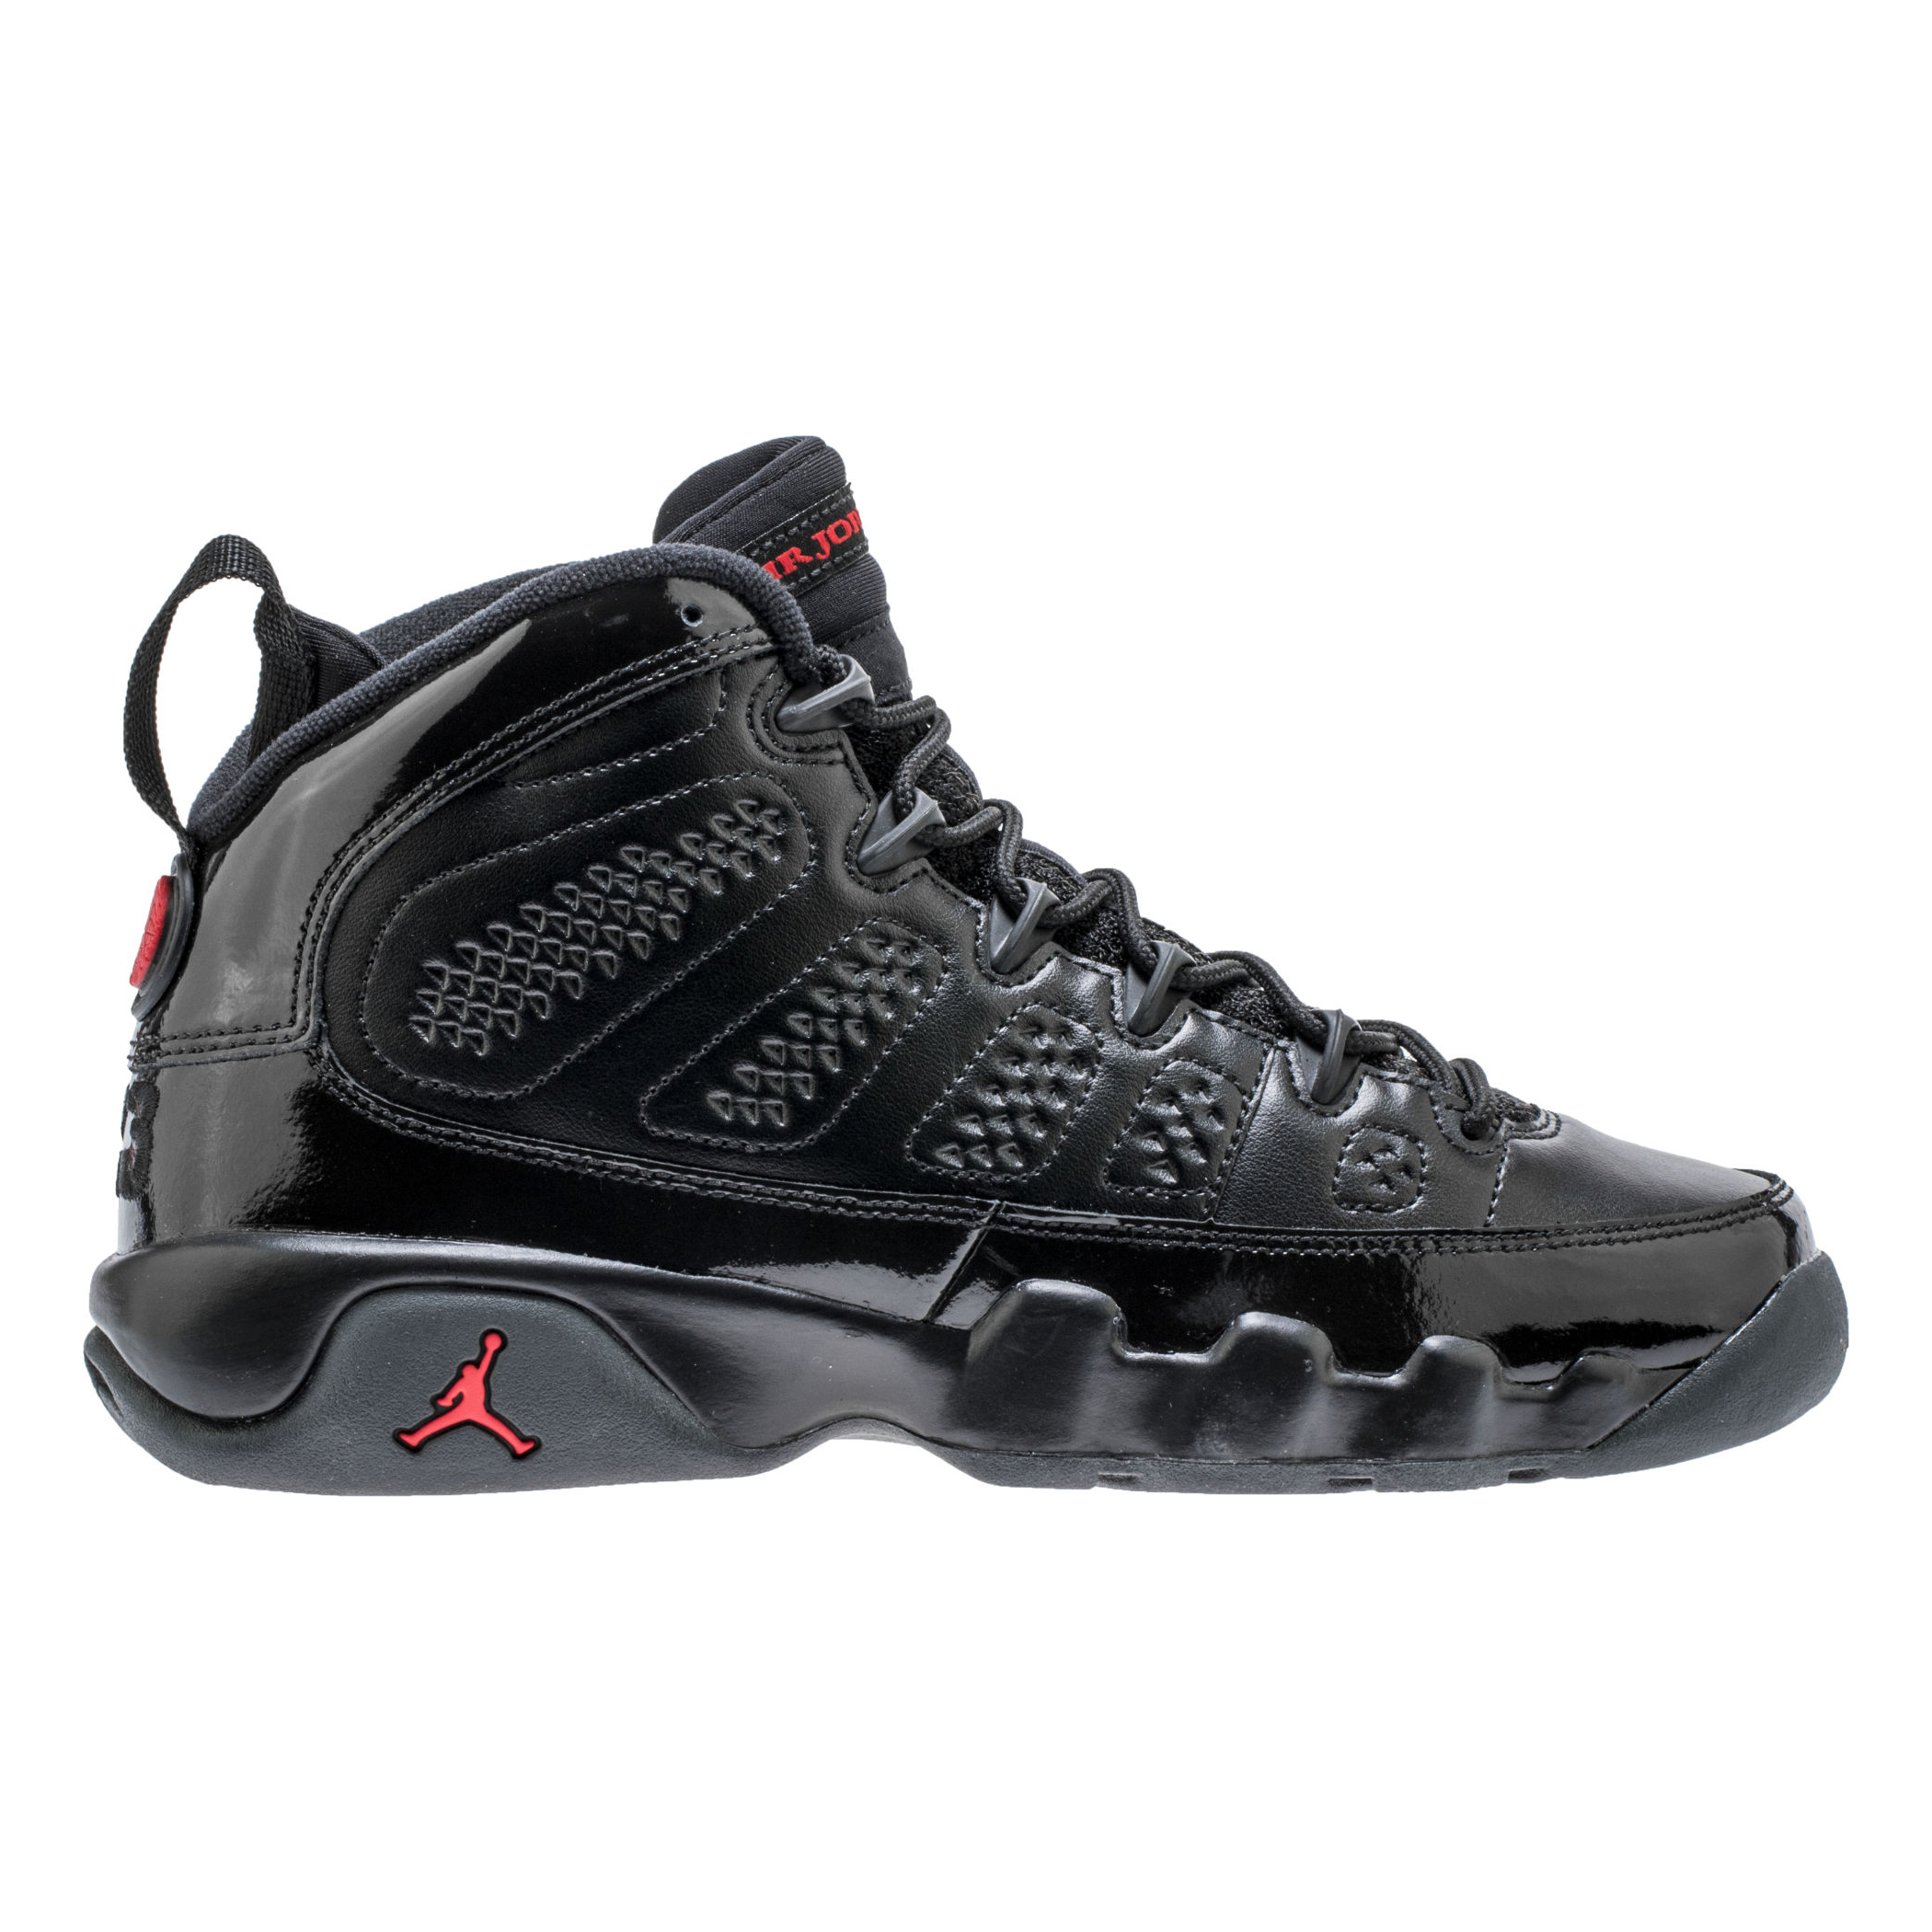 best website 2440c 14f23 The Air Jordan 9 in Black/University Red Drops for March ...